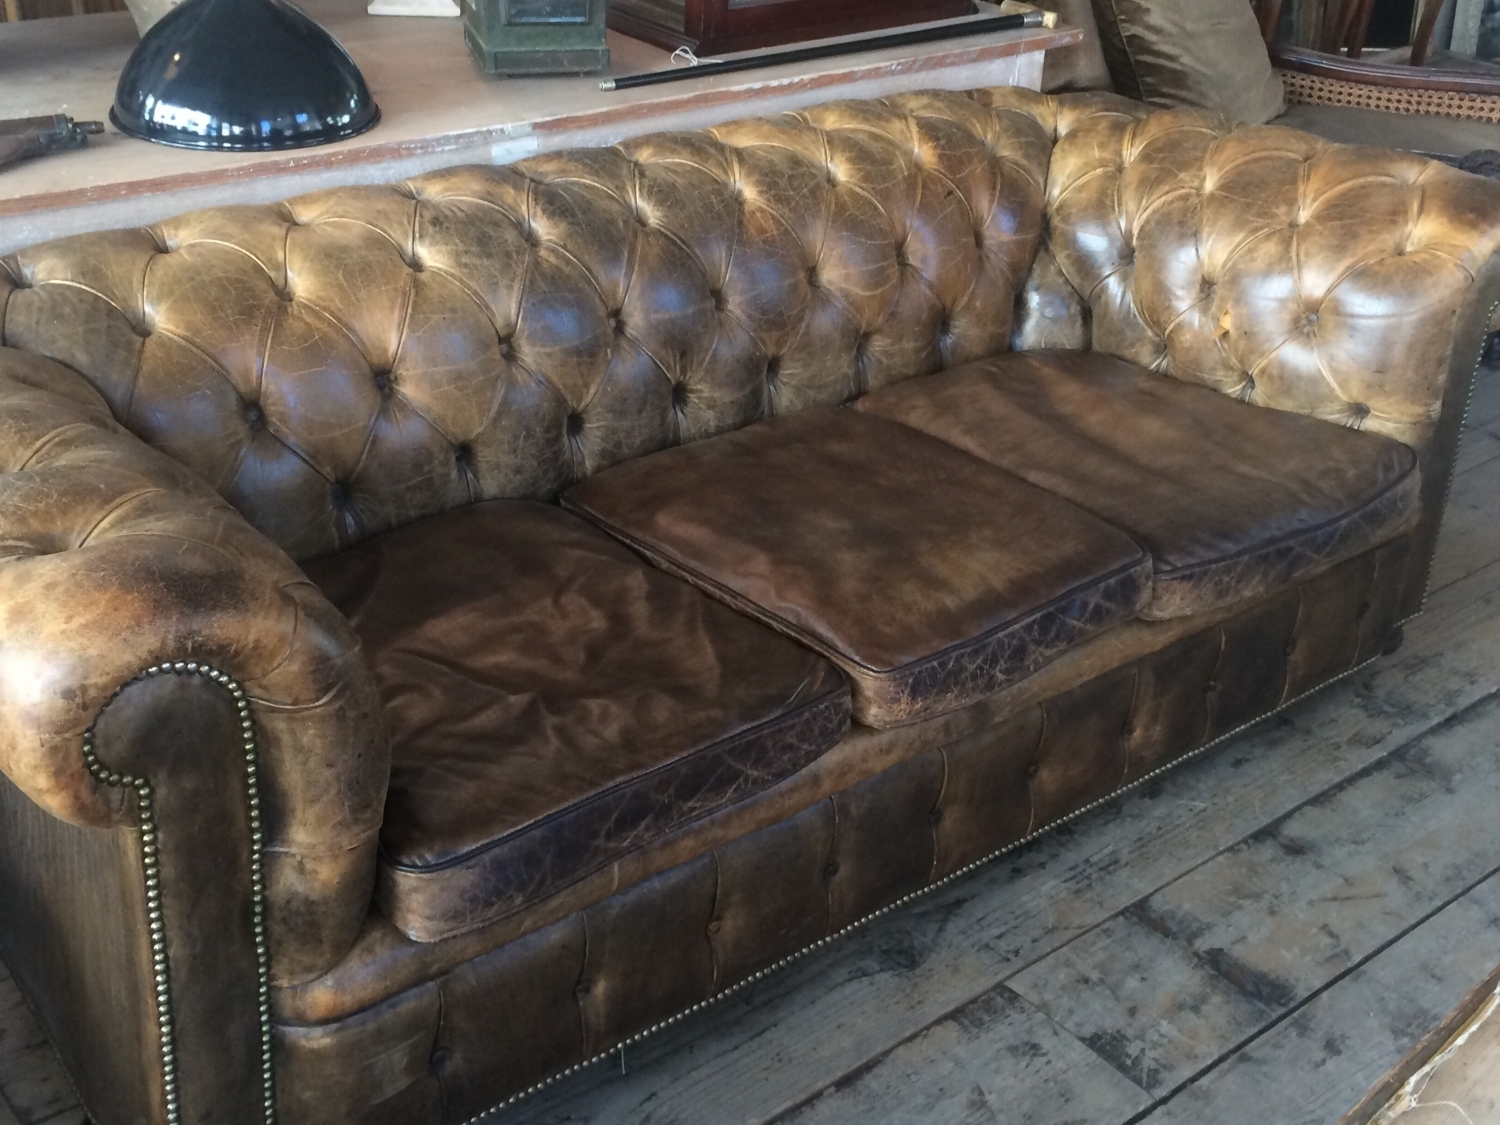 Vintage Chesterfield Sofas In Most Current Vintage Chesterfield Sofa In Furniture (View 7 of 20)